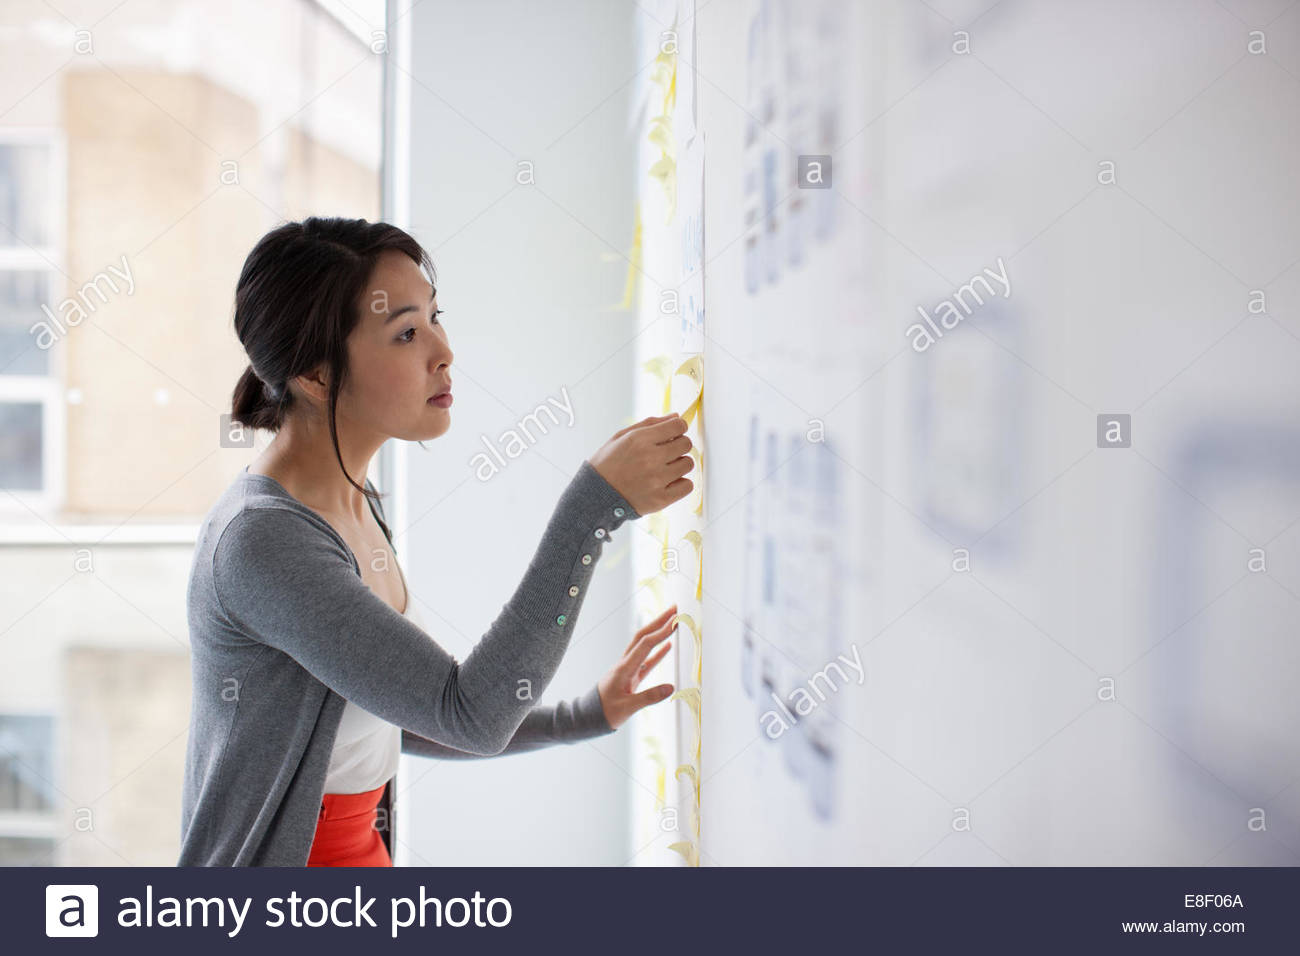 Businesswoman mise images sur tableau blanc Photo Stock